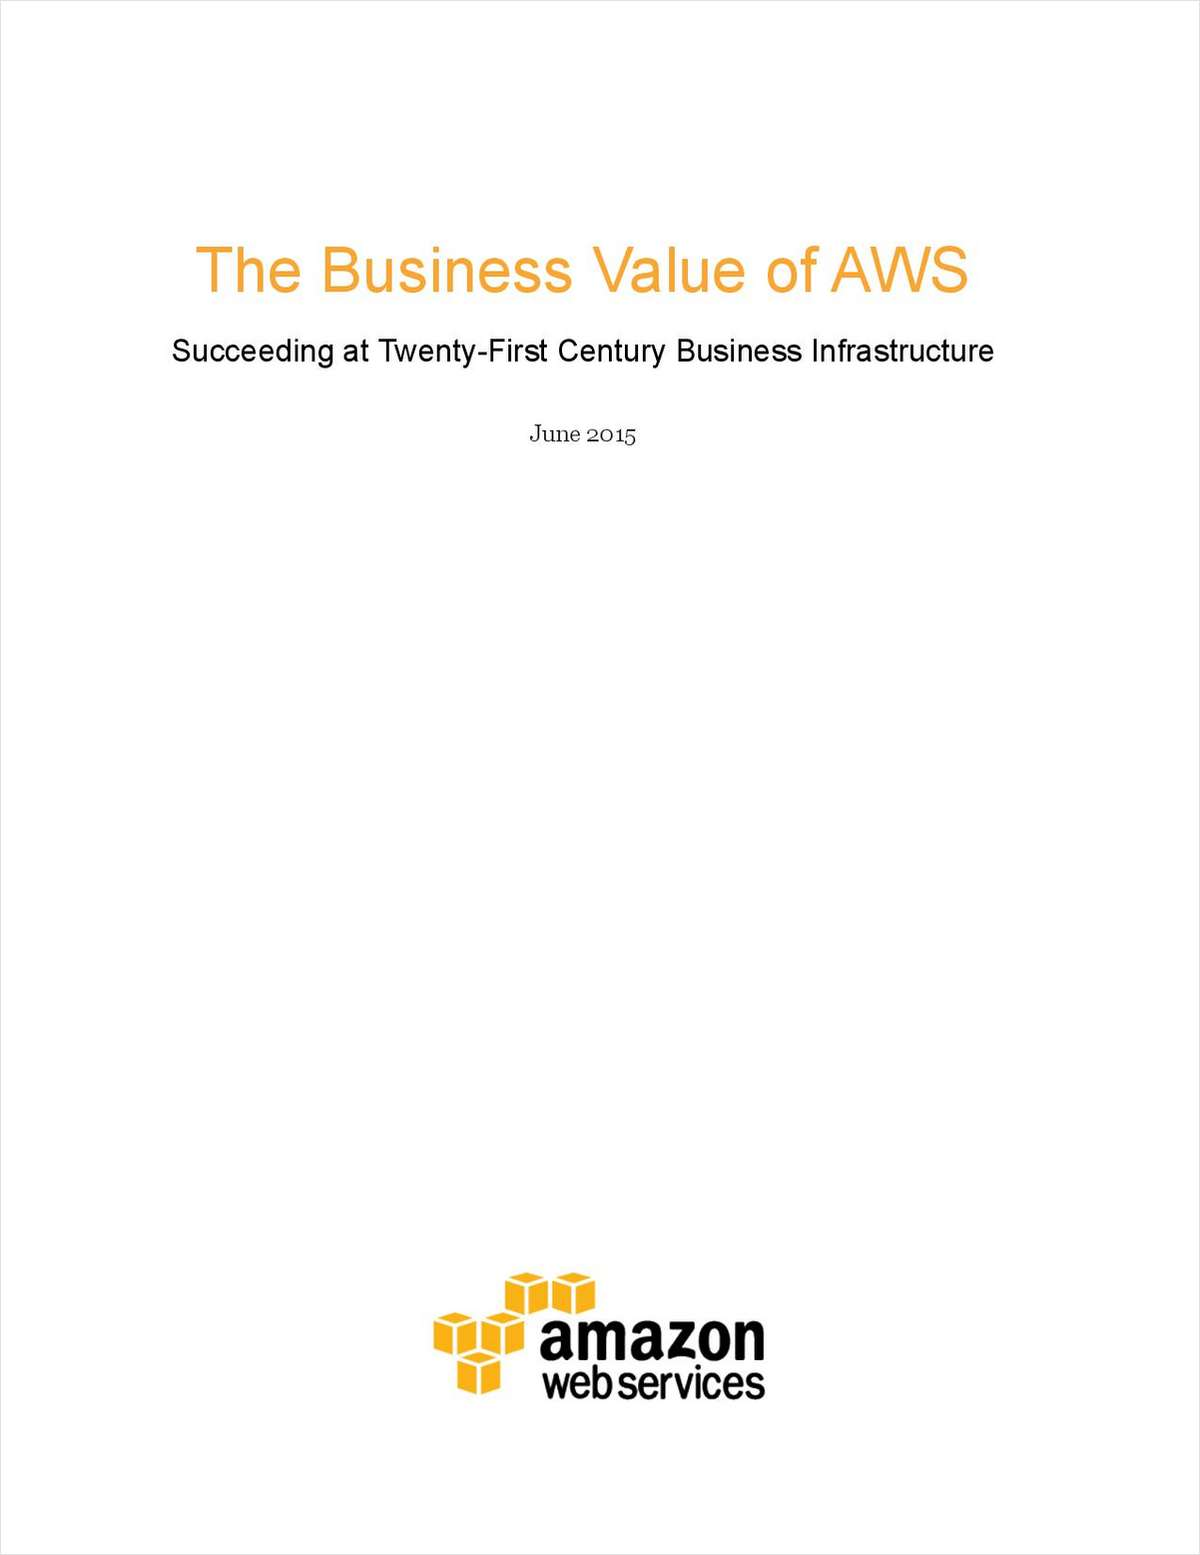 The Business Value of Amazon Web Services: Succeeding at Twenty-First Century Business Infrastructure